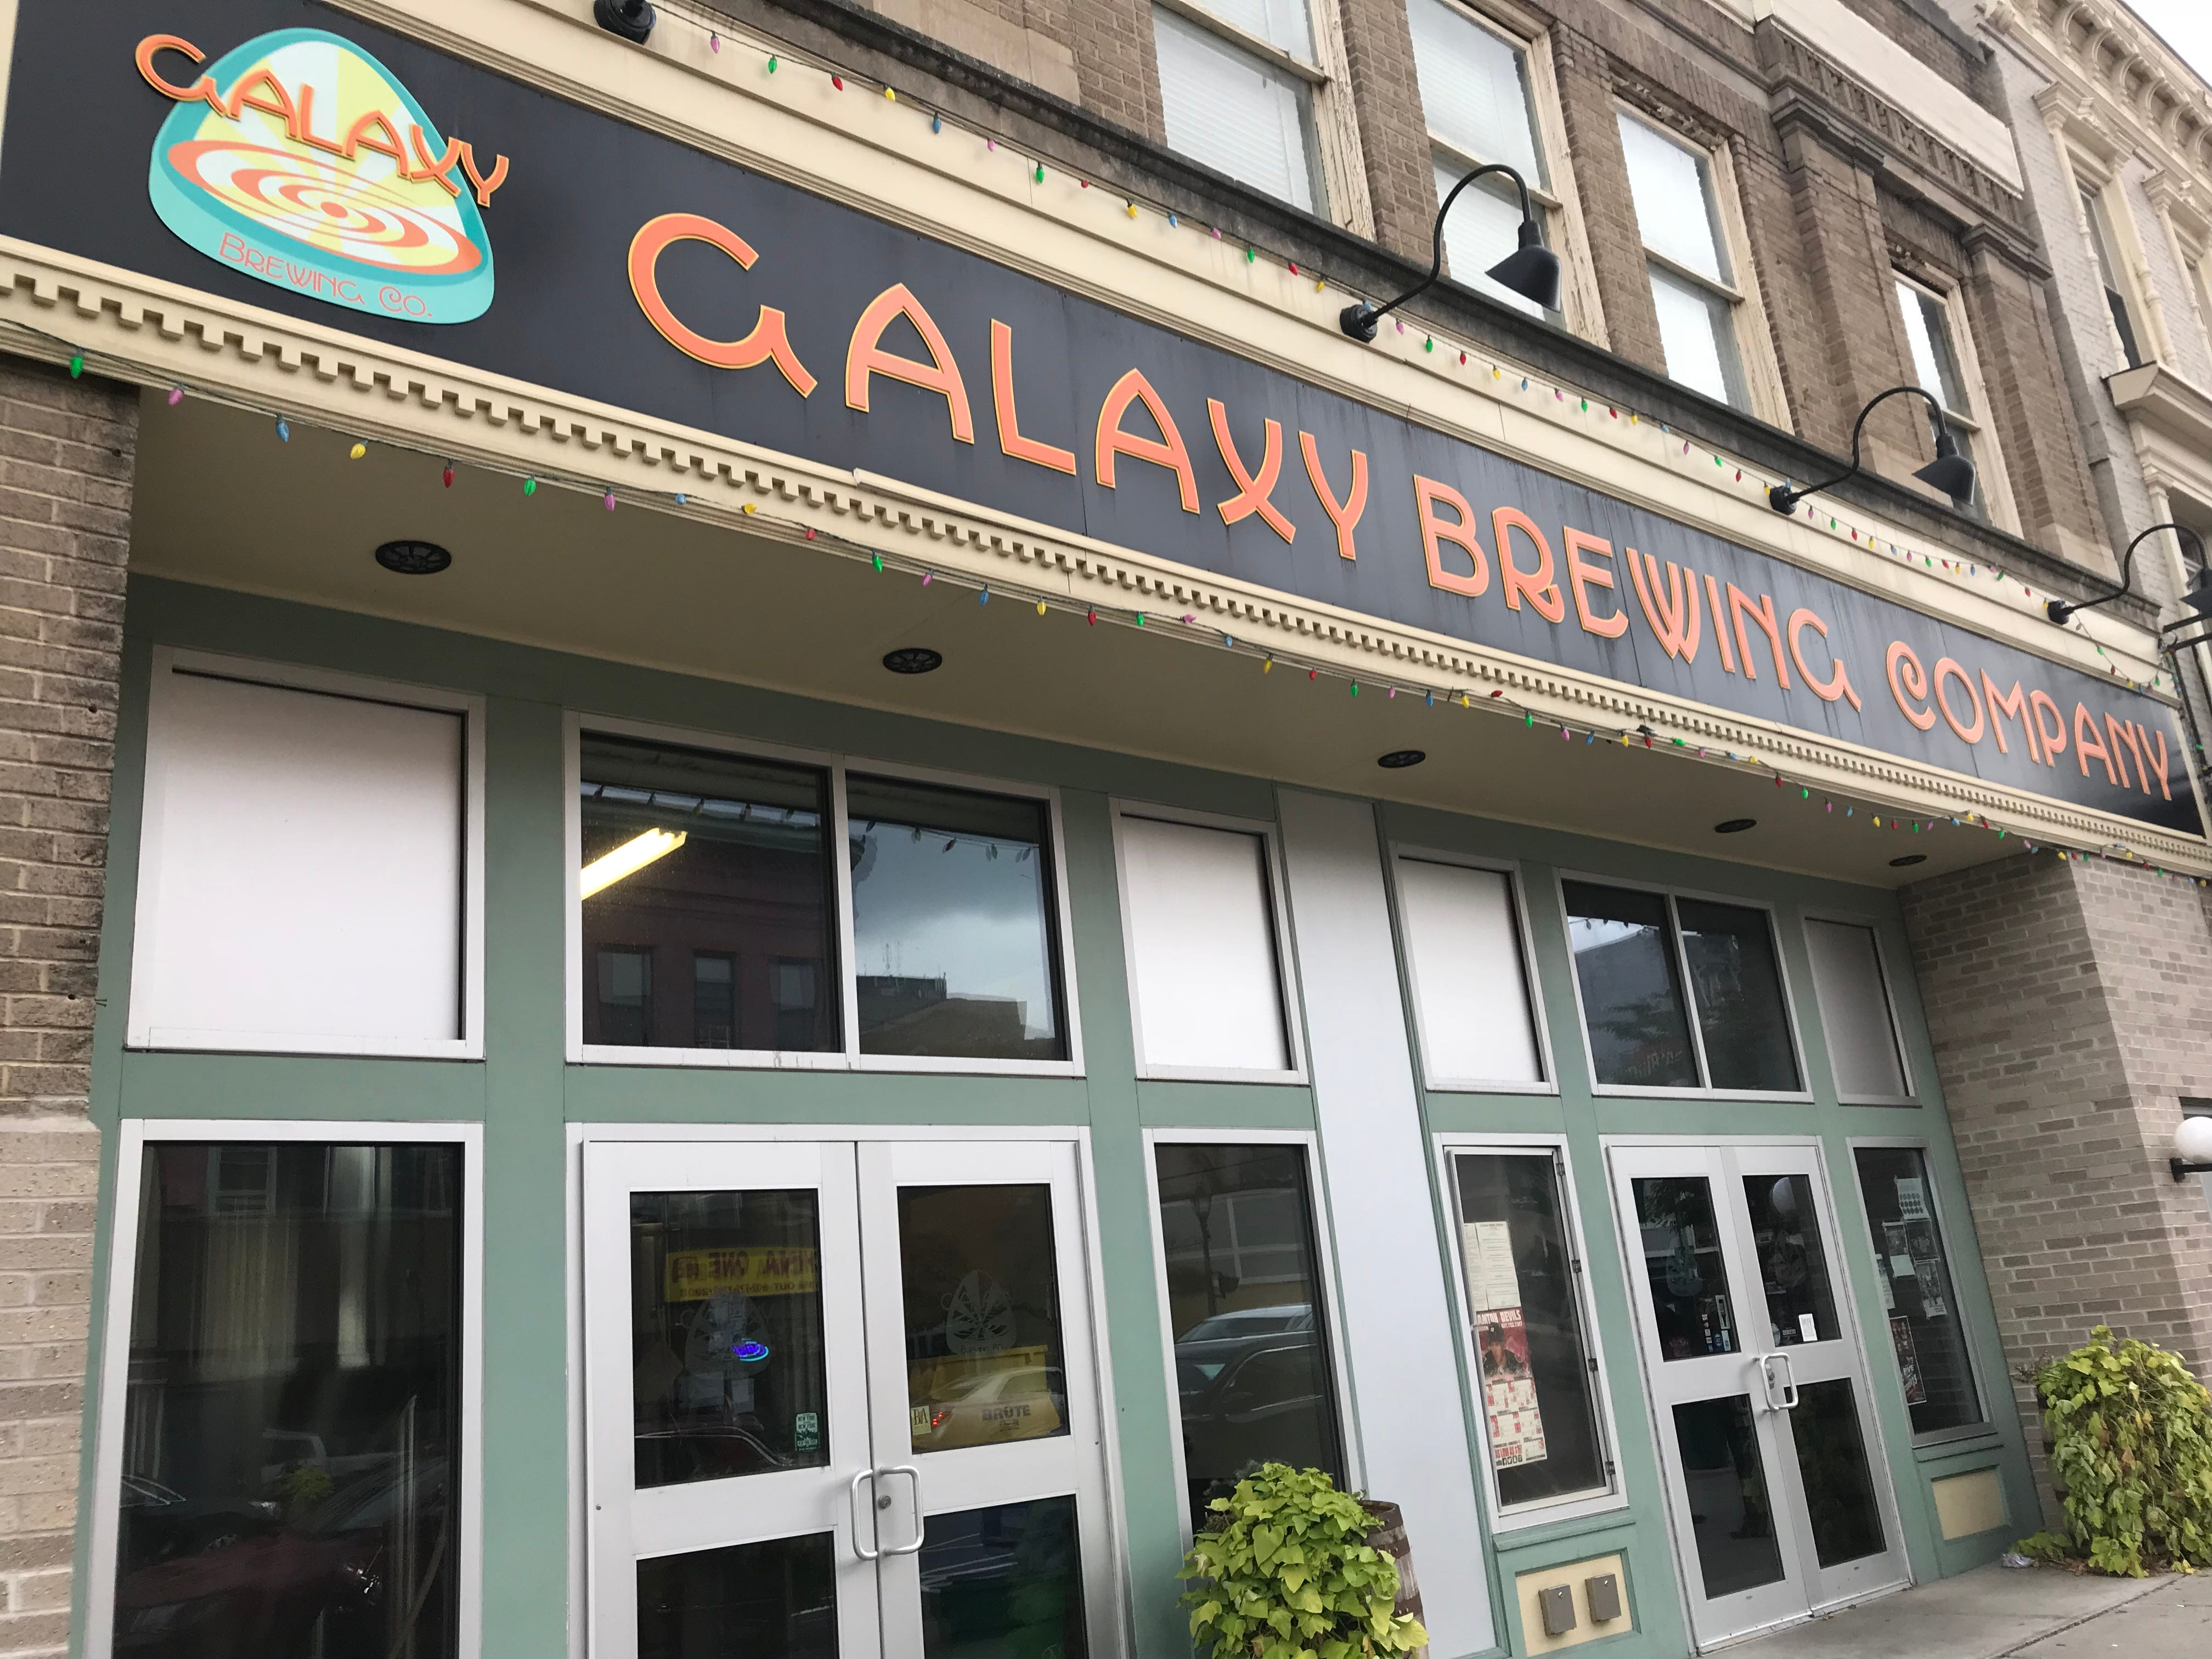 Galaxy Brewing Co. is at 41 Court St. in downtown Binghamton.